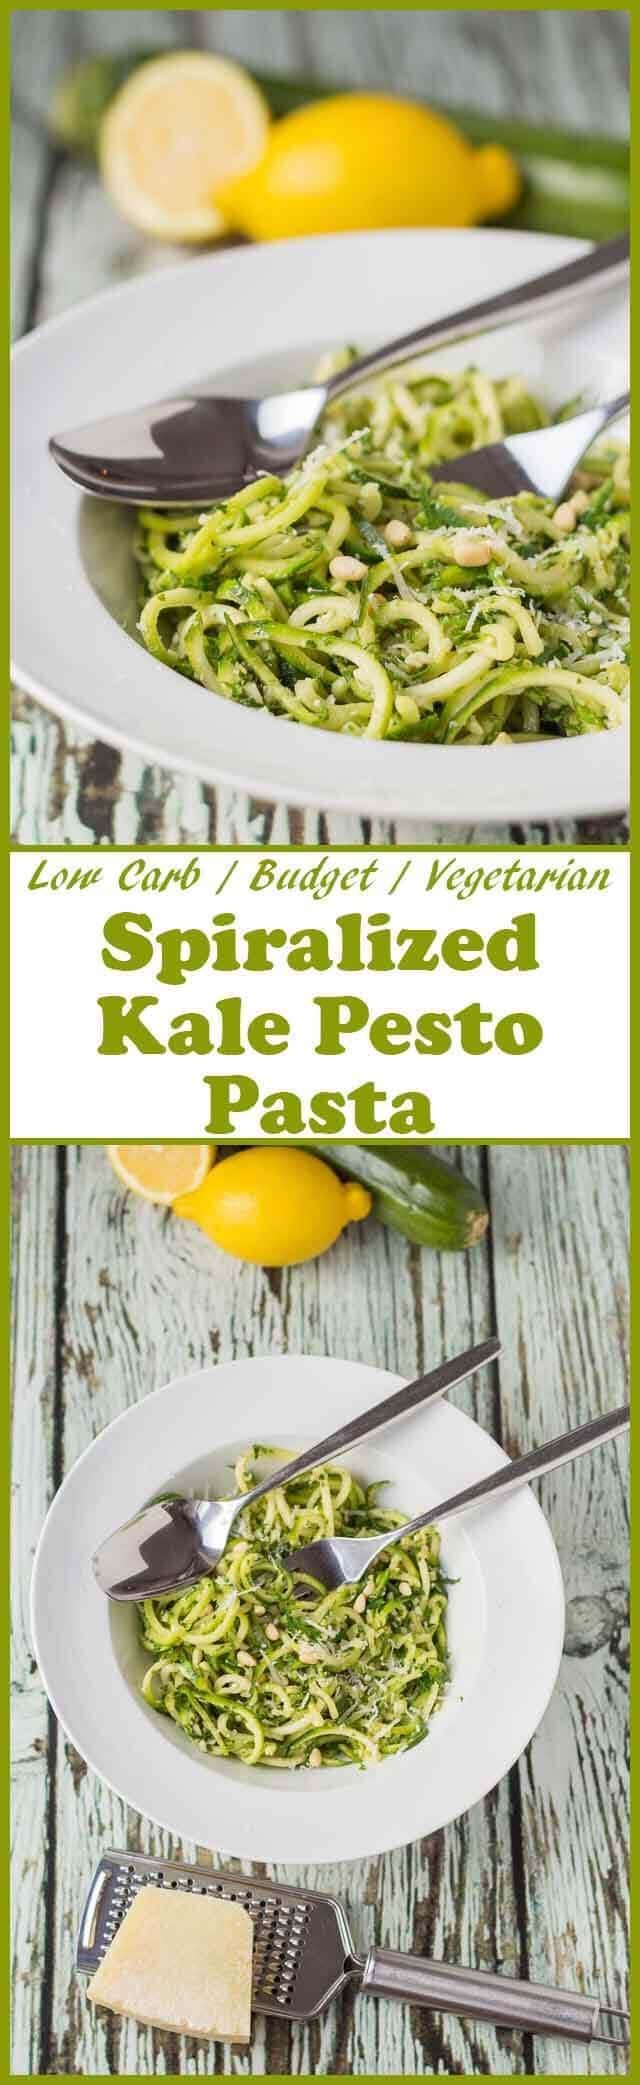 Spiralized kale pesto pasta is a delicious and easy 30 minute meal combining all the goodness of kale with spiralized courgettes. It's low carb, budget and vegetarian too!